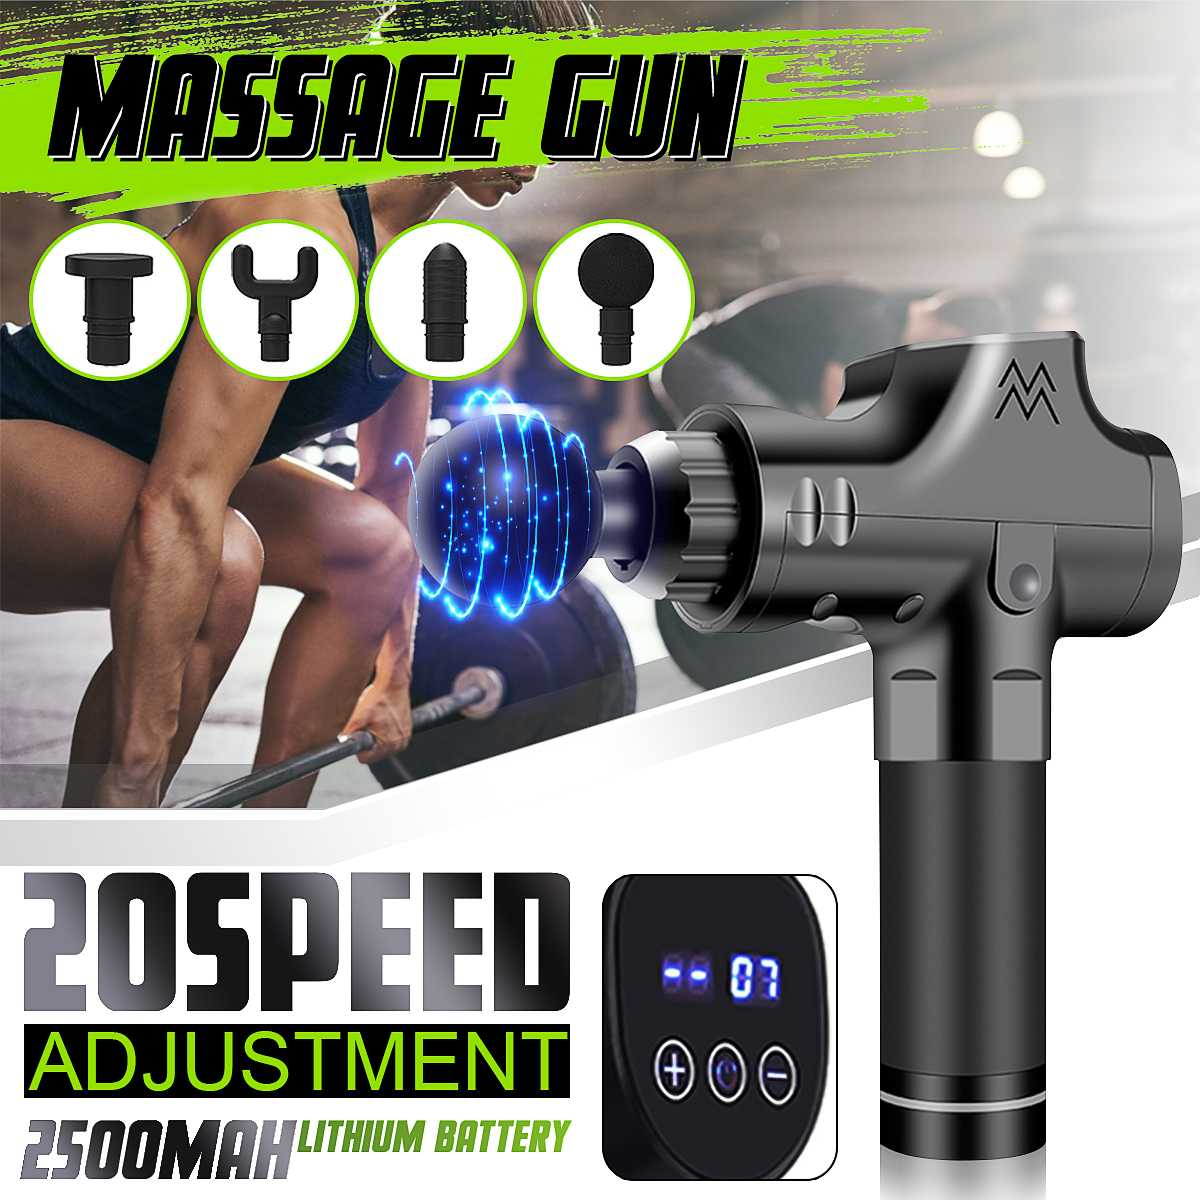 20 Gear LCD Electronic Therapy Muscle Massage Guns Deep Tissue Massage Theragun Body Relaxation Pain Relief Massager +4 Heads